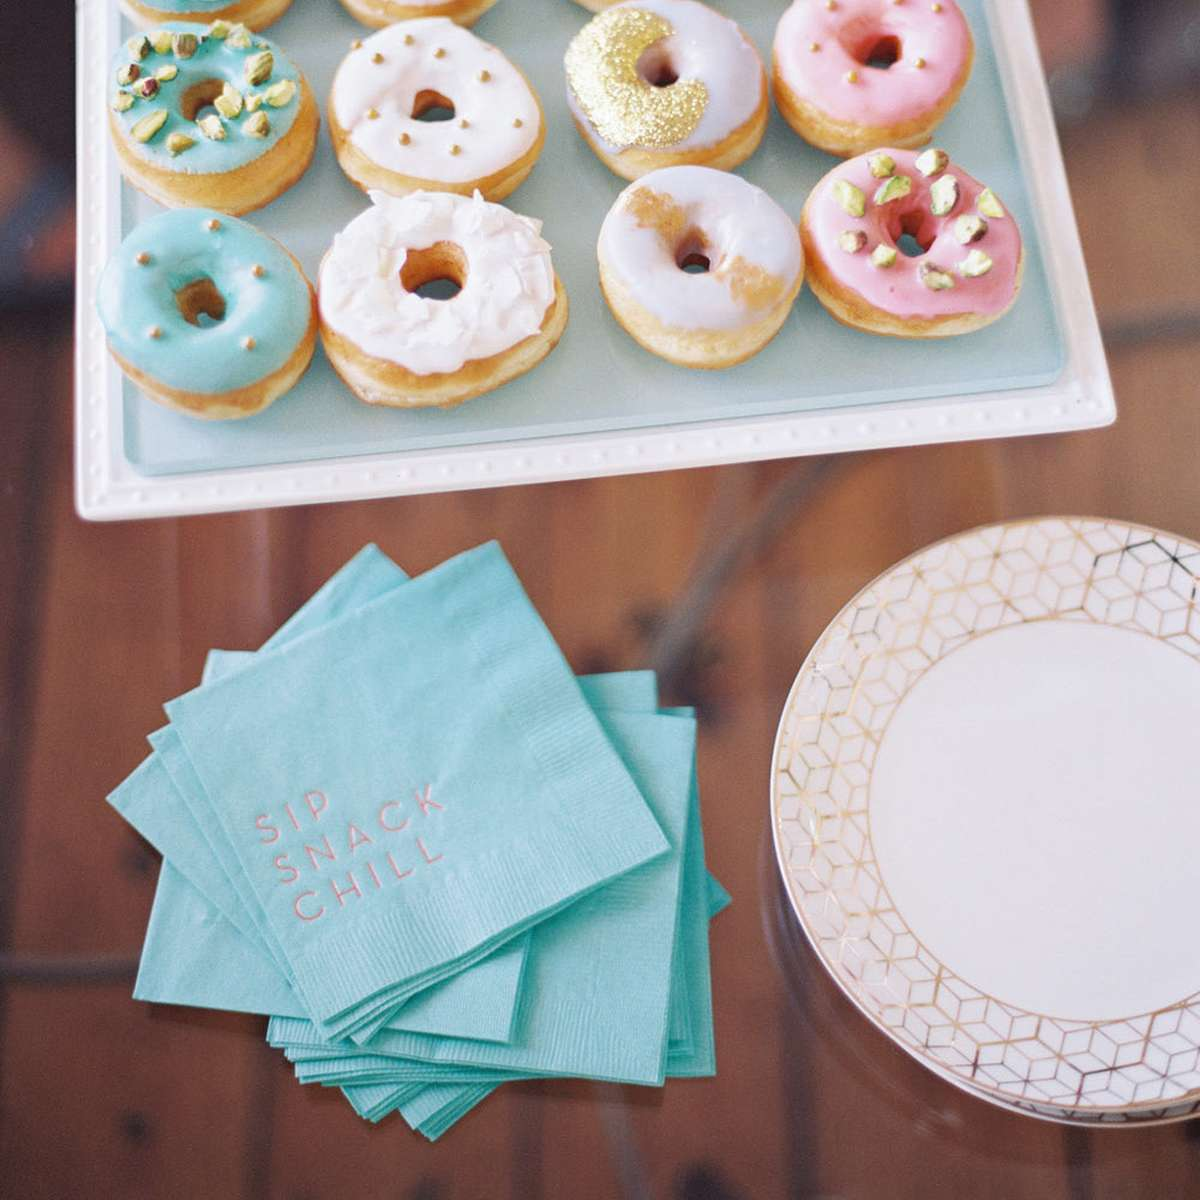 how to decorate for a dessert party with personalized cocktail napkins